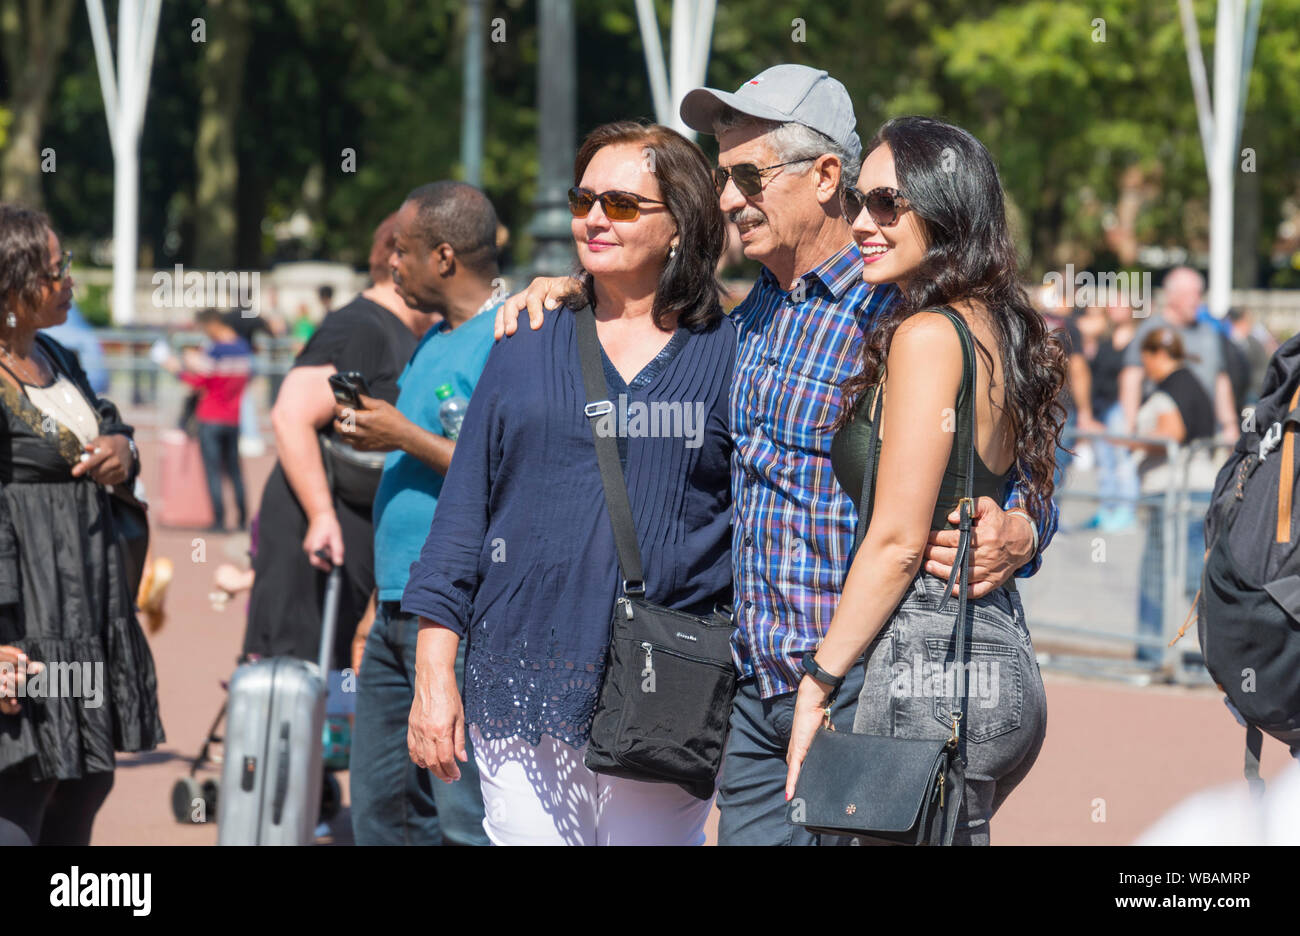 Group of tourists posing for a photo in Summer in Central London, England, UK. Stock Photo